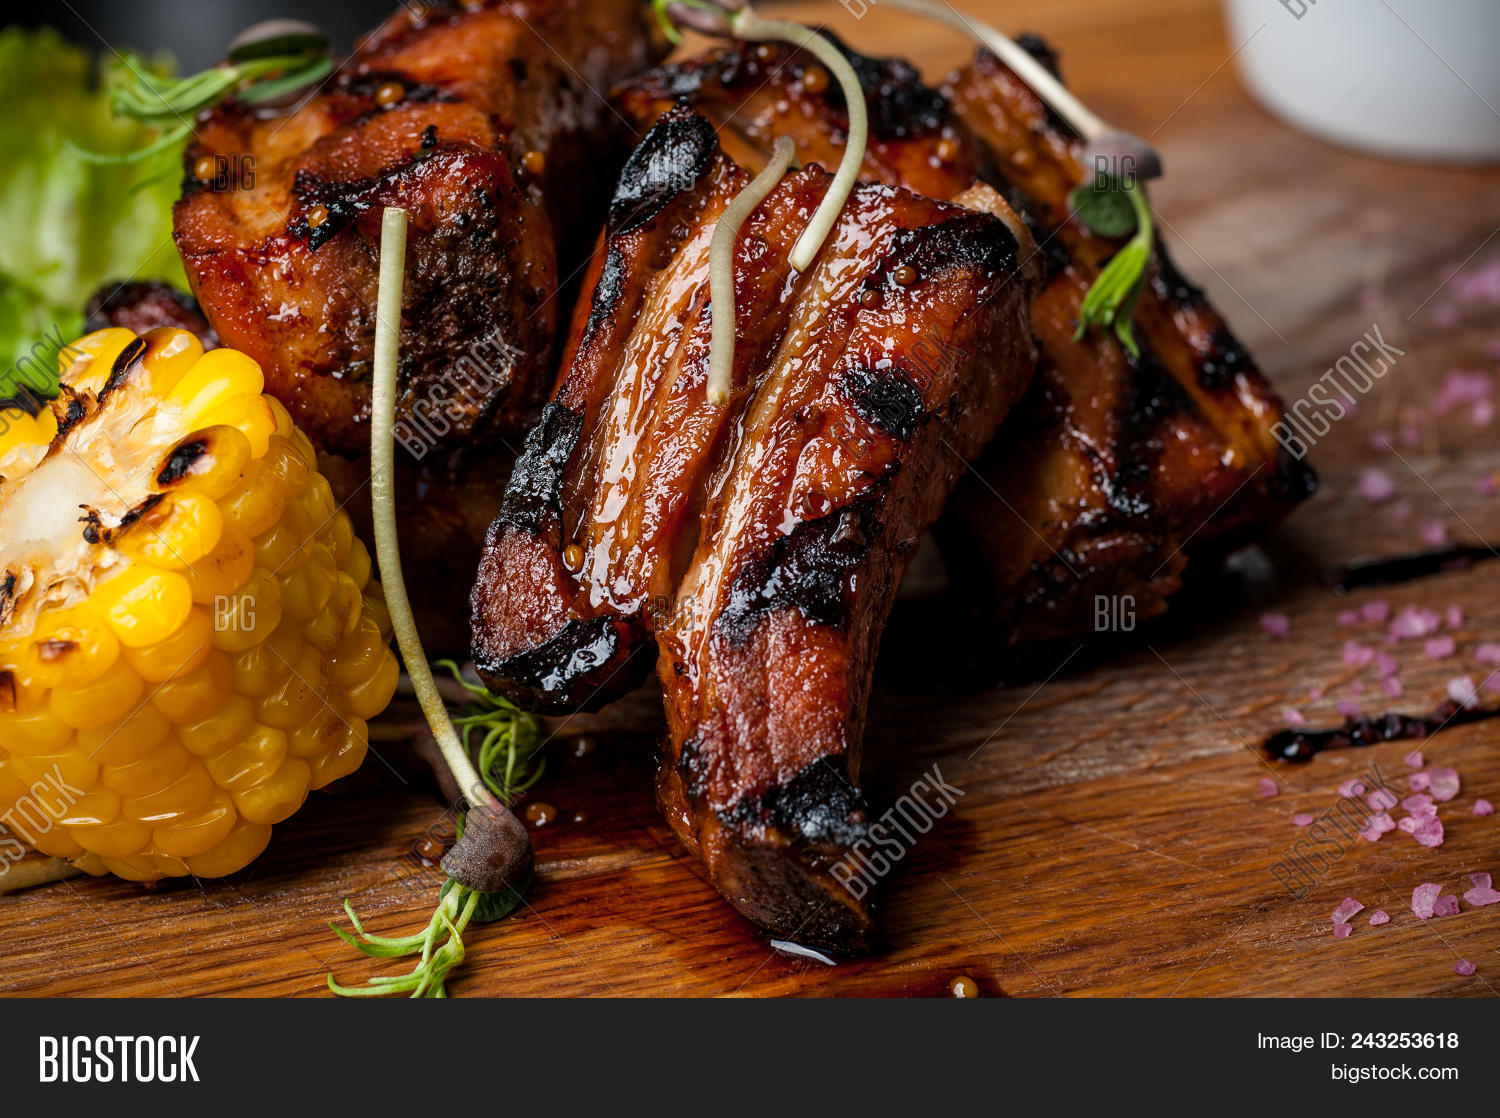 Barbecued Ribs with Rosemary Corn foto